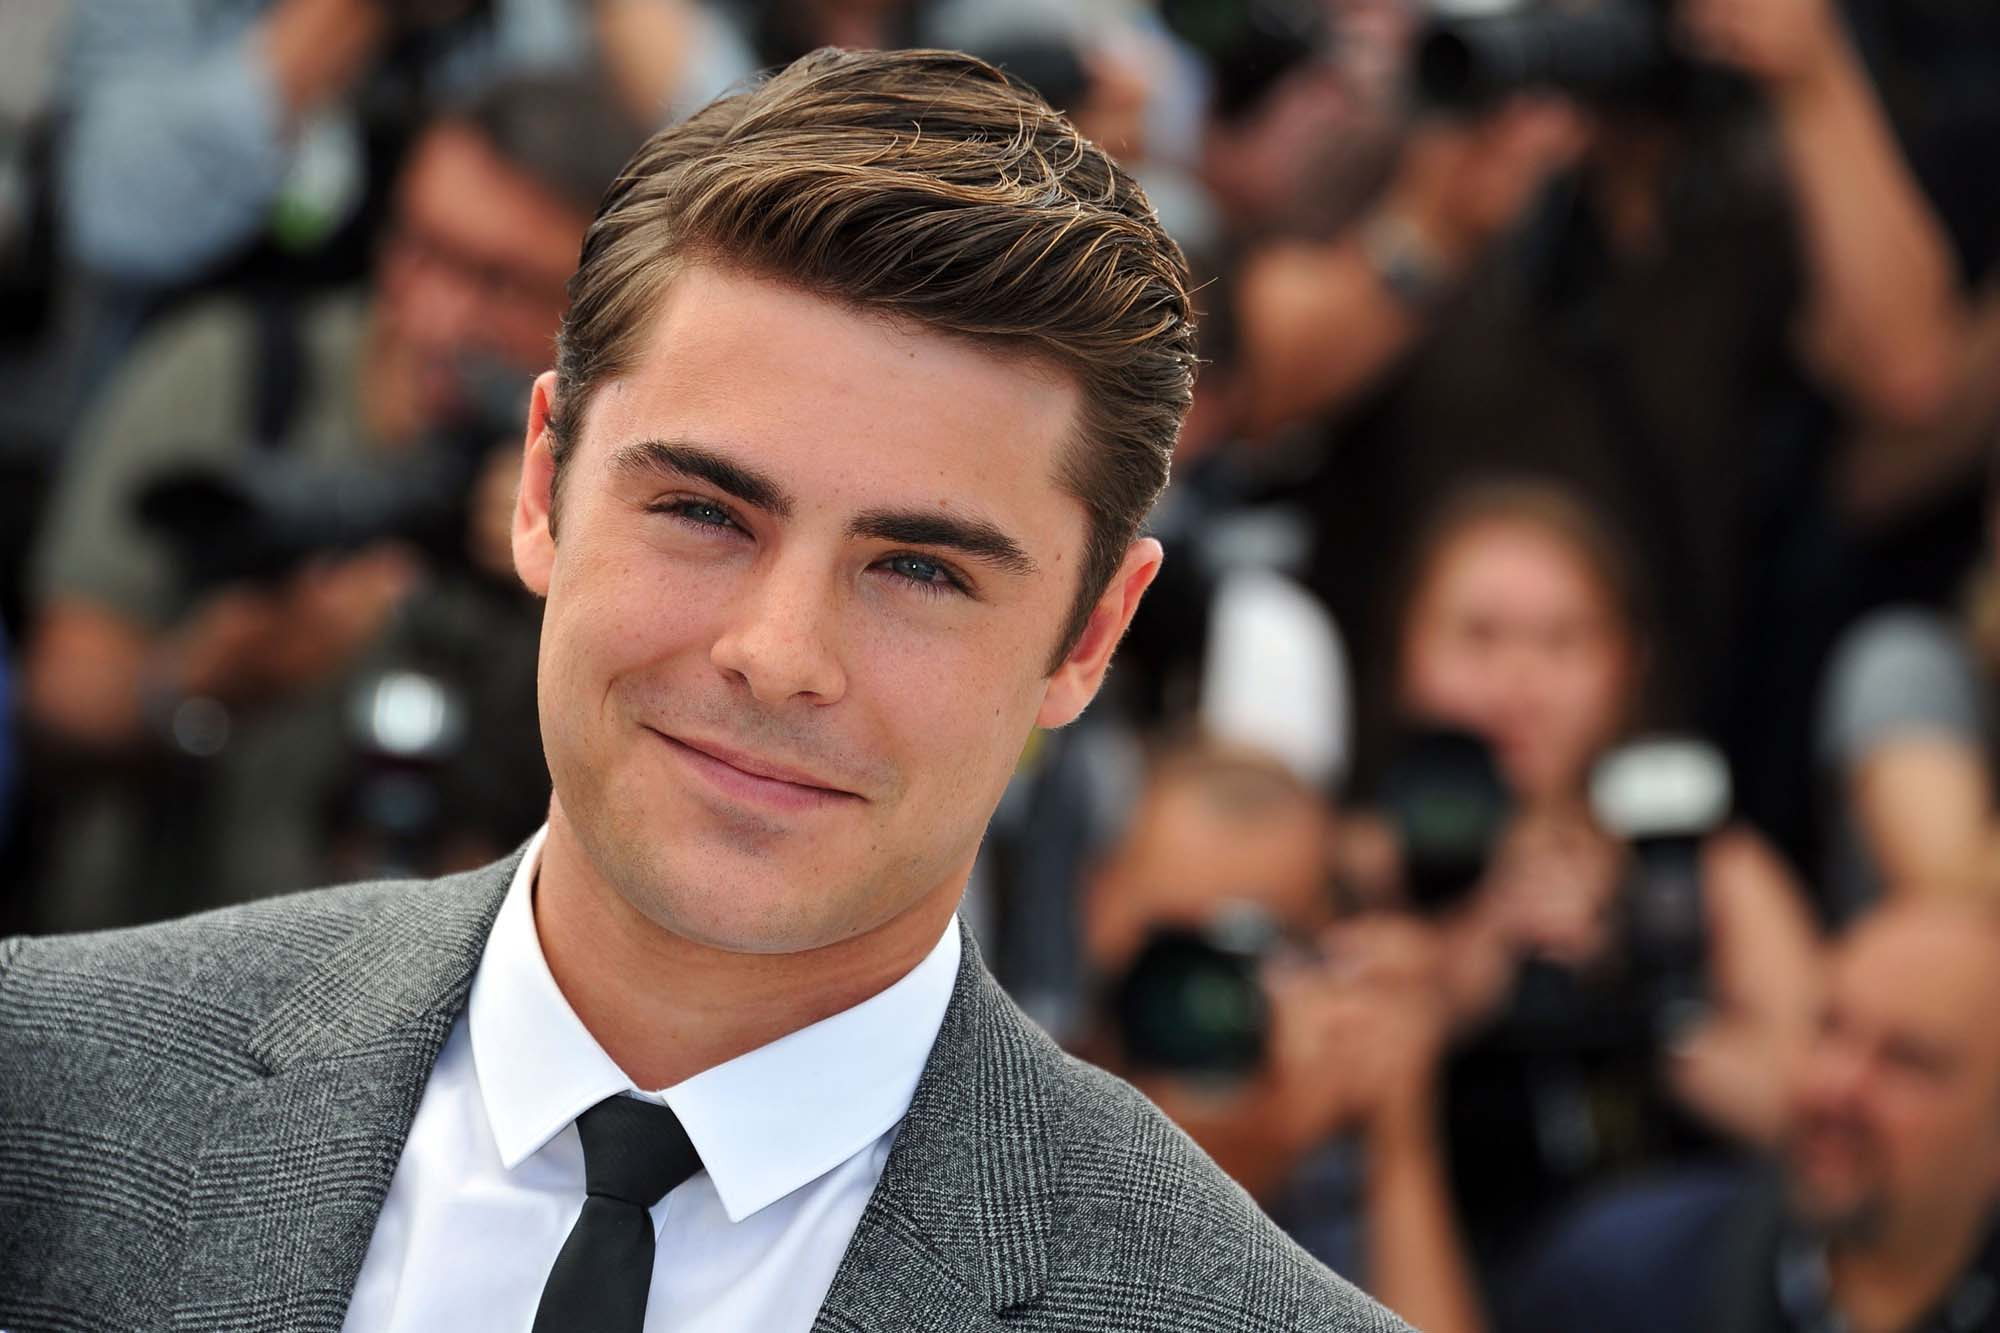 Zac Efron Hairstyle Tattoo And Abs